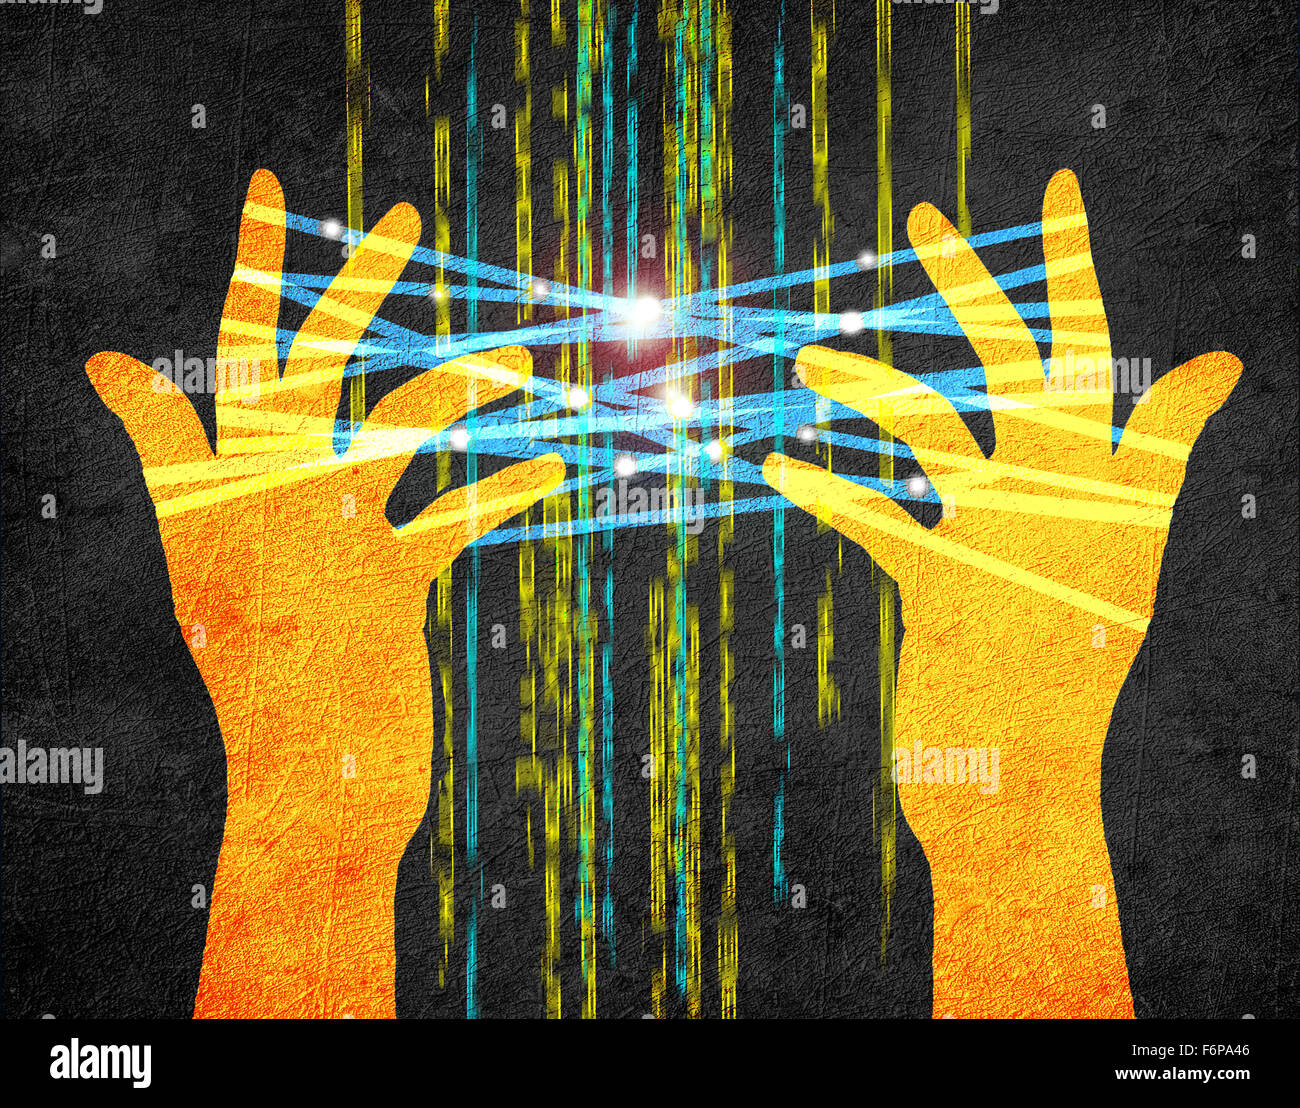 Internet concept digital illustration with hands - Stock Image